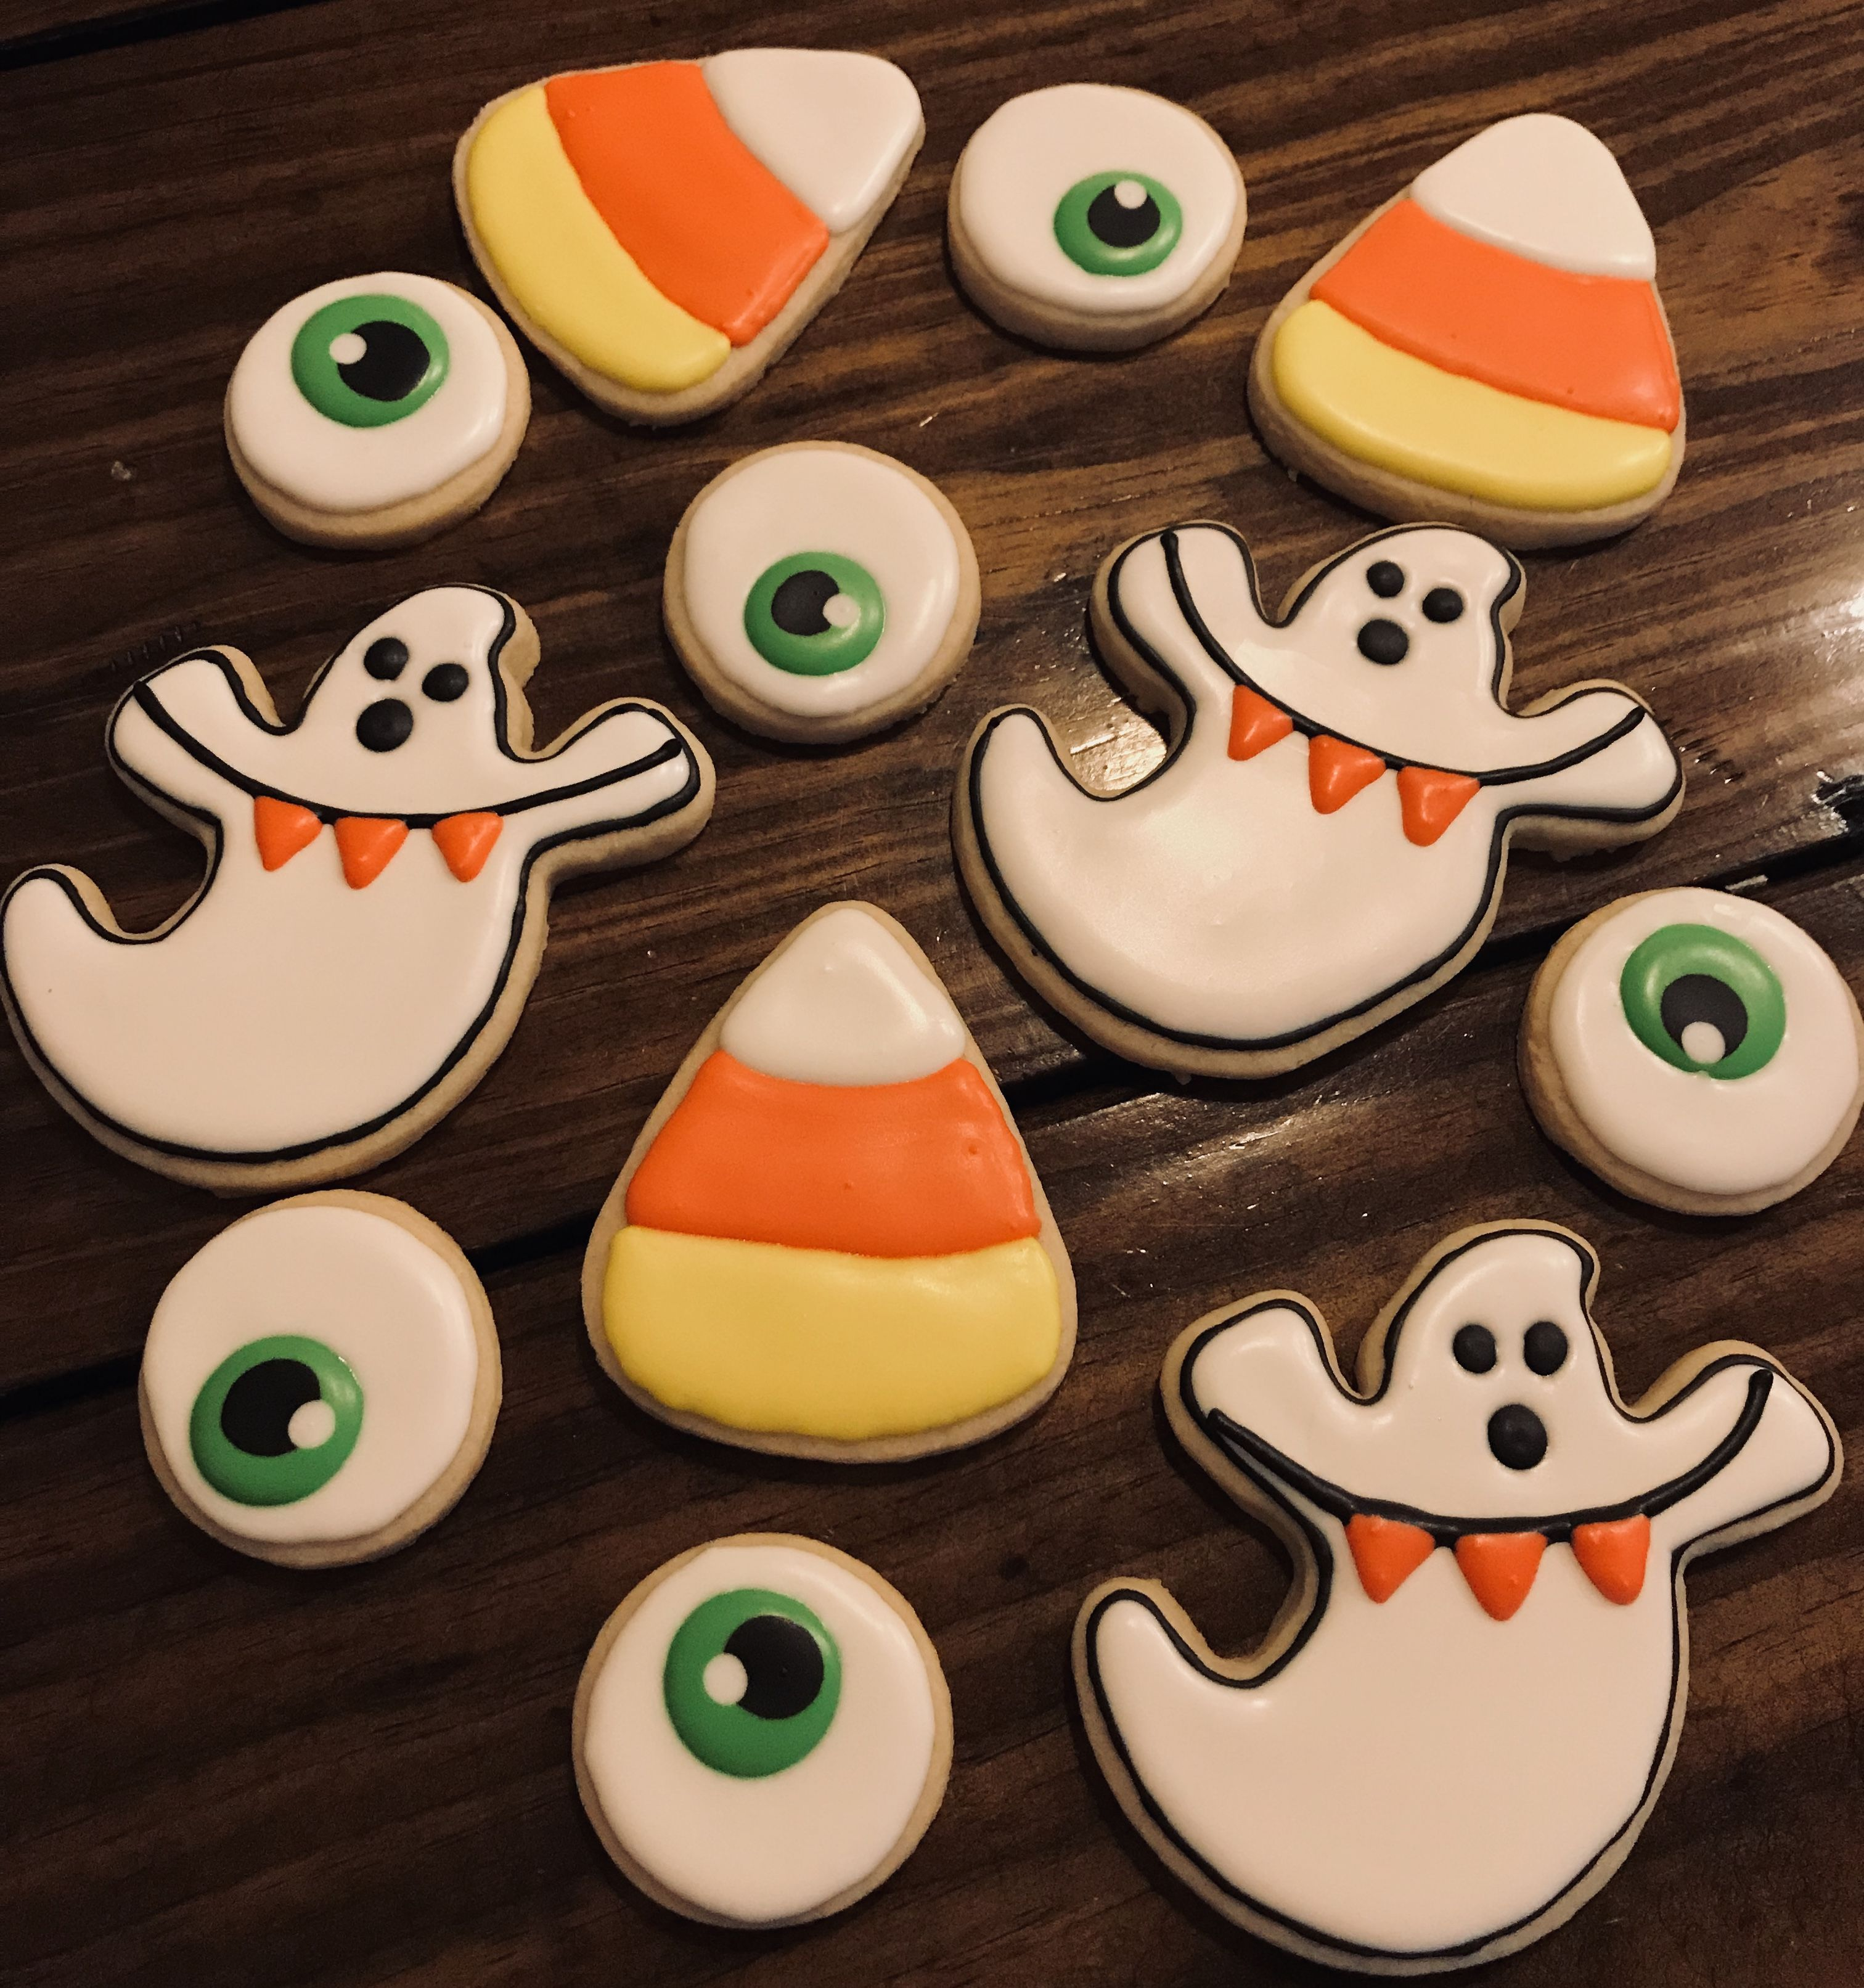 Halloween Ghost Candy Corn Eyeball Decorated Royal Icing Sugar Cookies #candycorncookies Halloween Ghost Candy Corn Eyeball Decorated Royal Icing Sugar Cookies #halloweensugarcookies